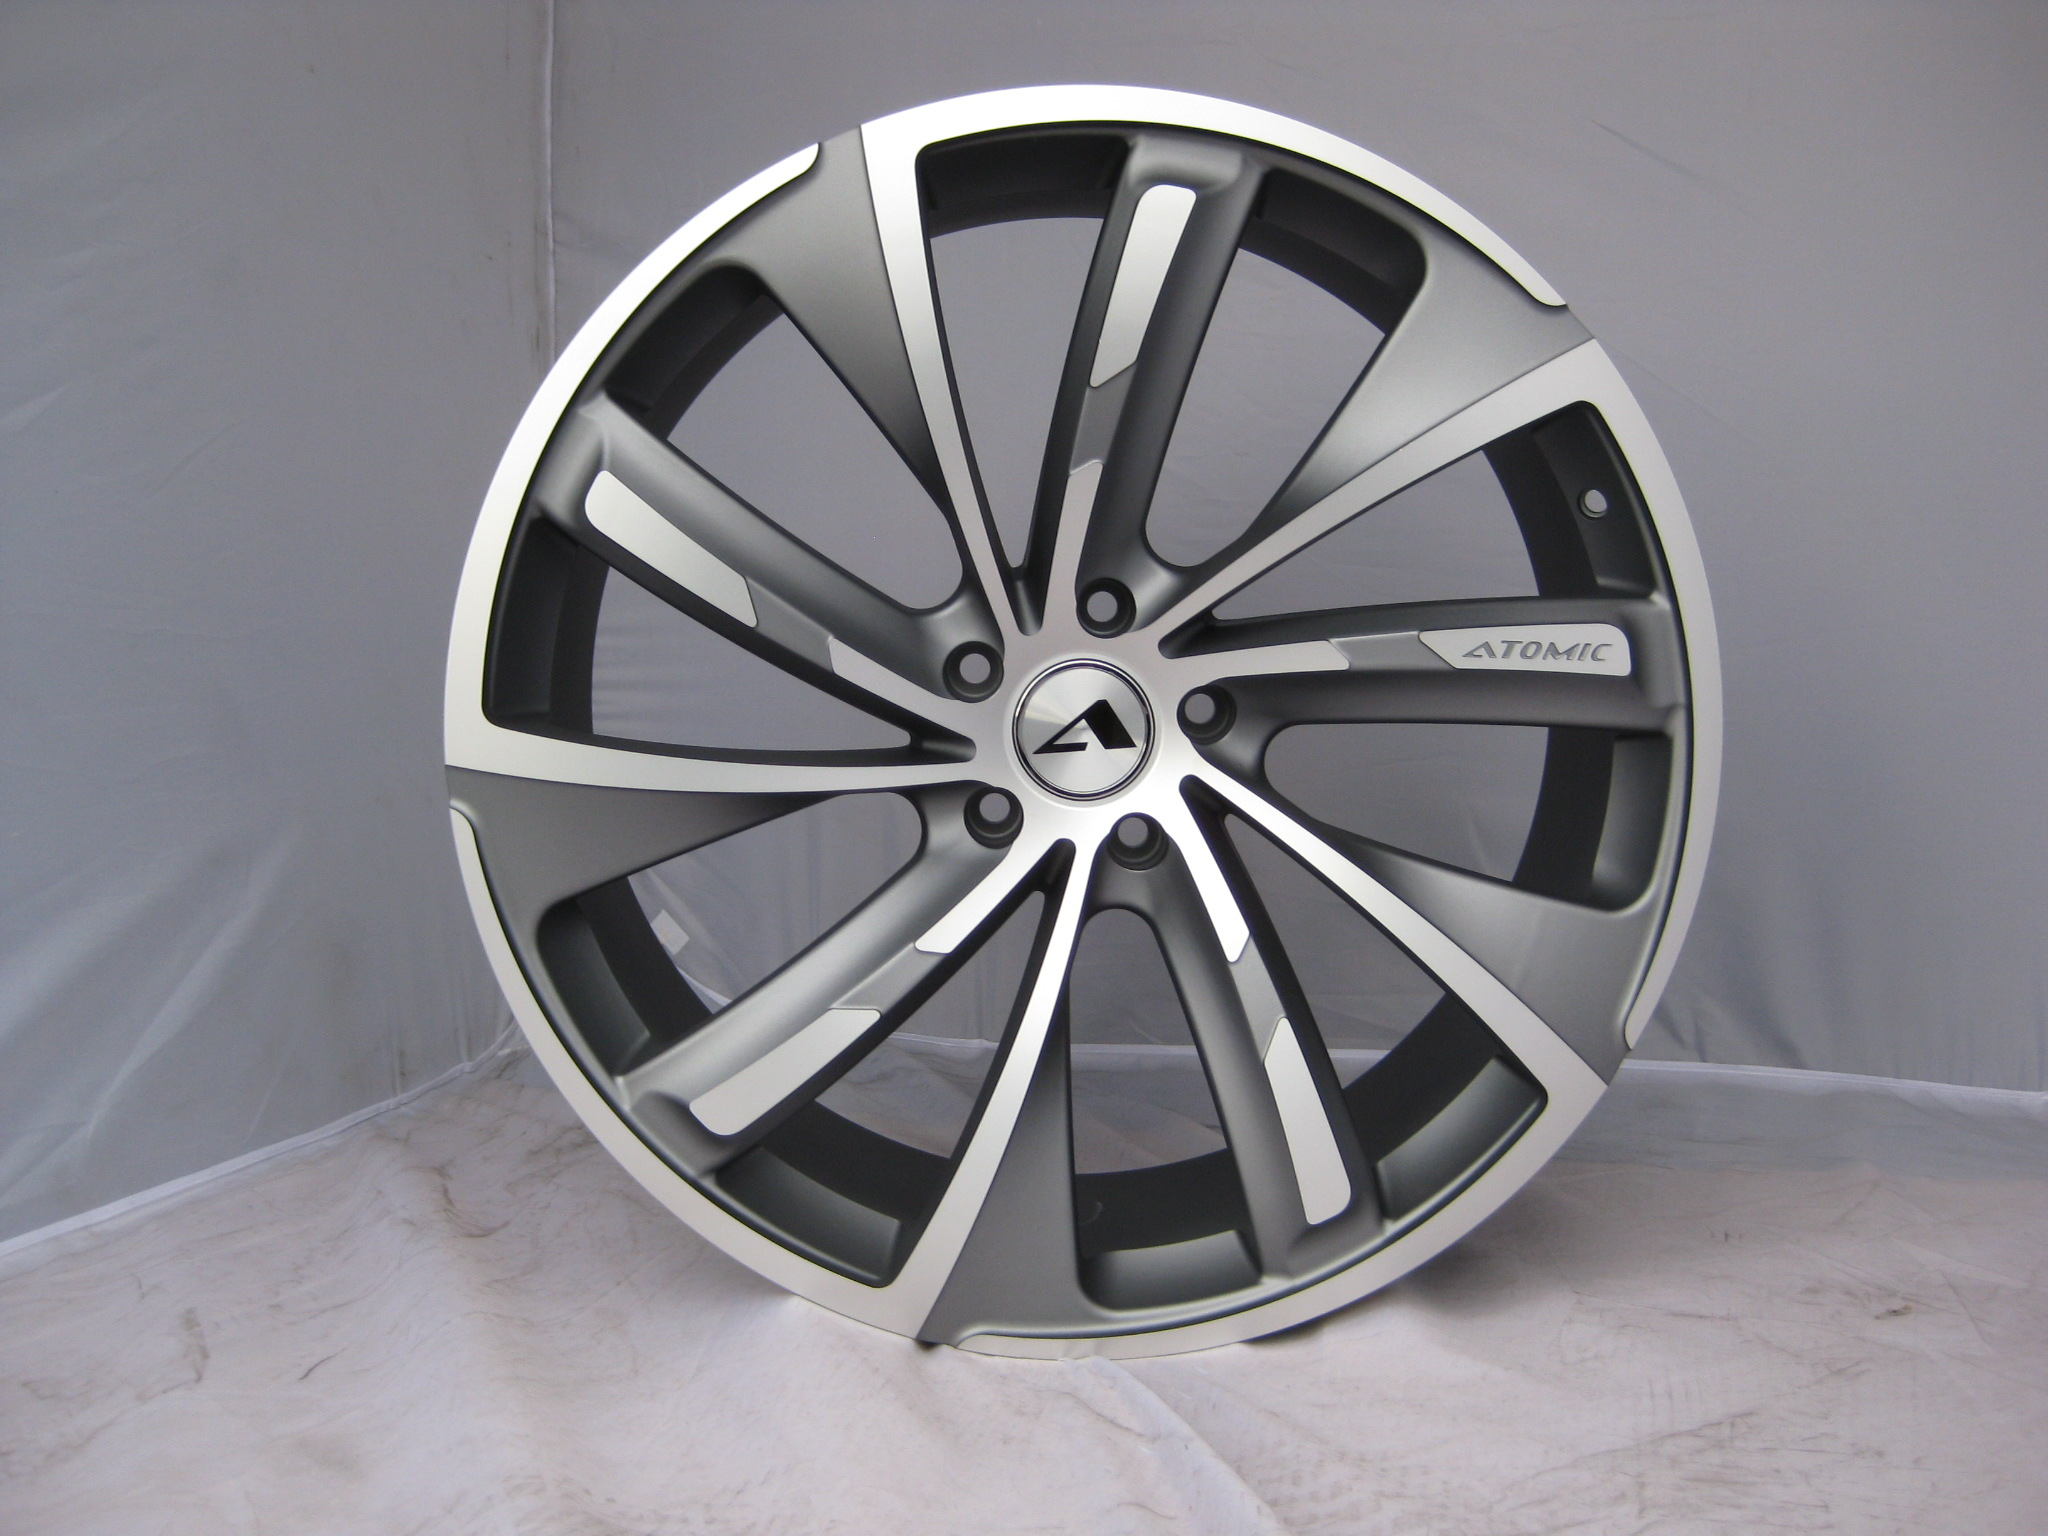 "NEW 20"" ATOMIC TURBINE IN MATT GUNMETAL WITH POLISHED DETAIL et35 or et45"